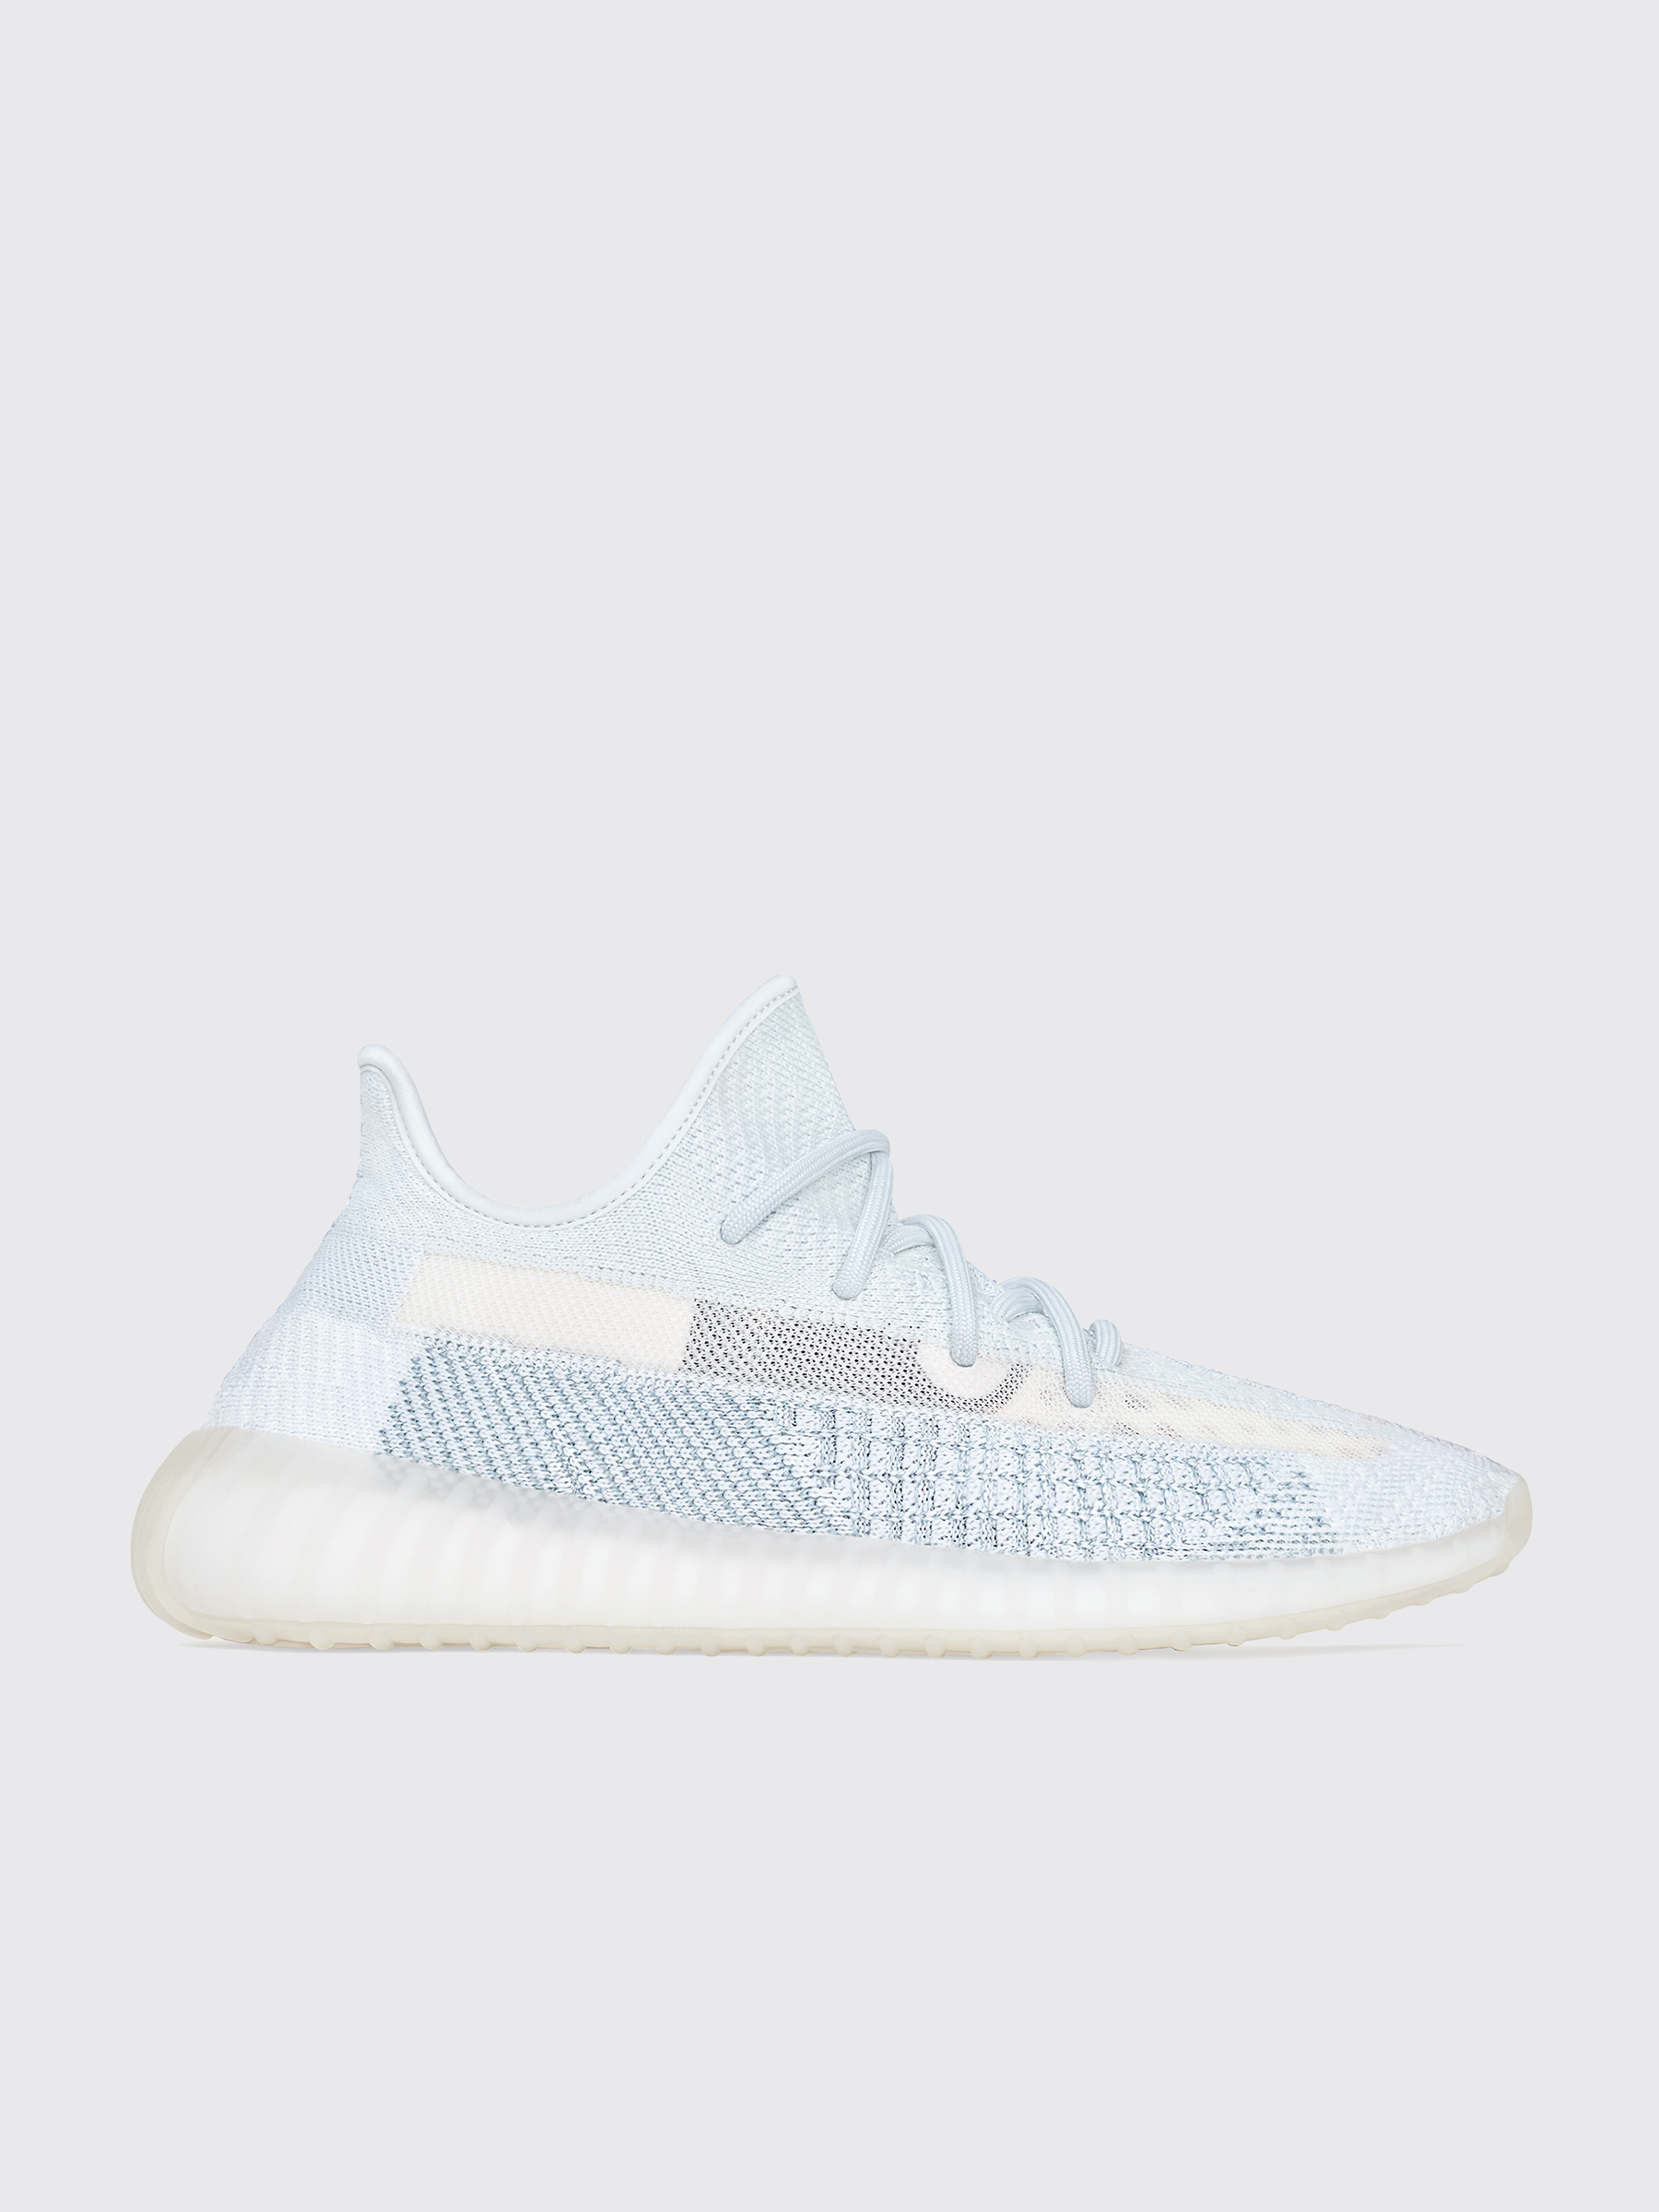 "adidas Yeezy Boost 350 V2 ""Glow in the Dark�?For Sale"